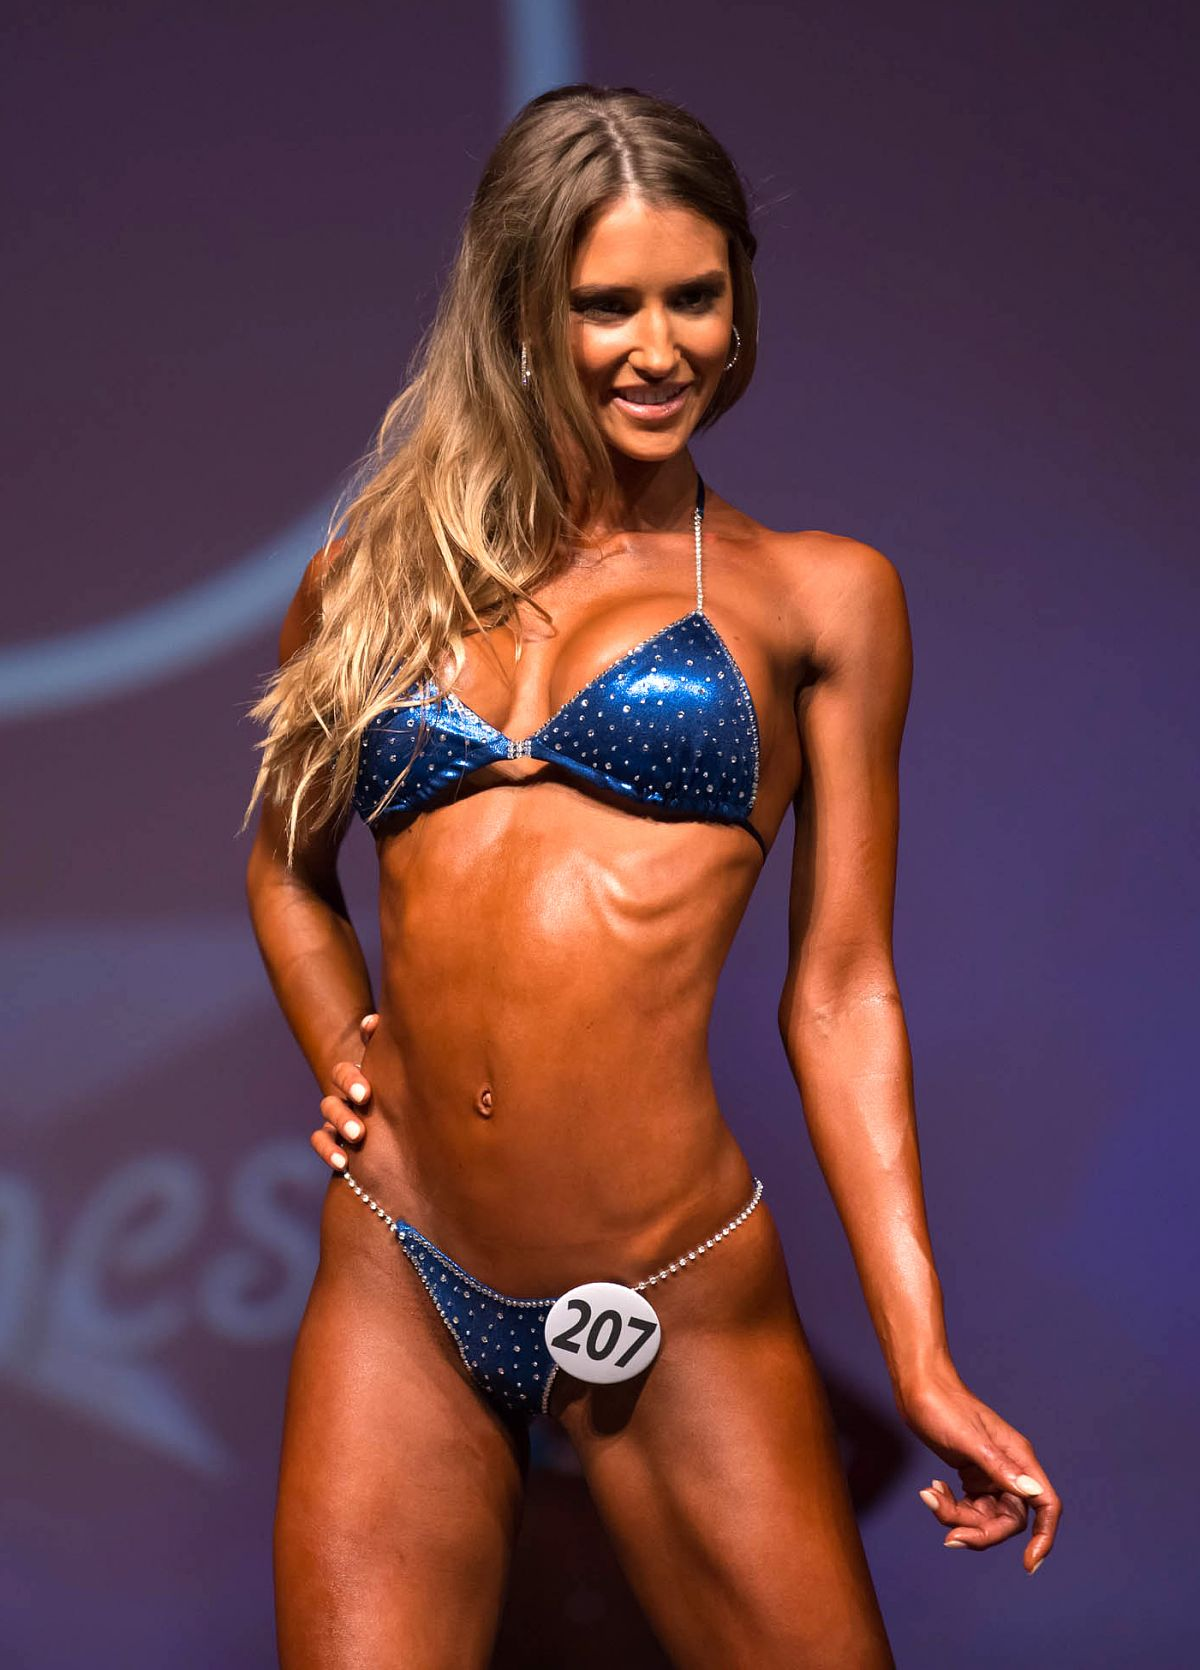 DAICA THRALL at Miami Pro Fitness Ms. Bikini